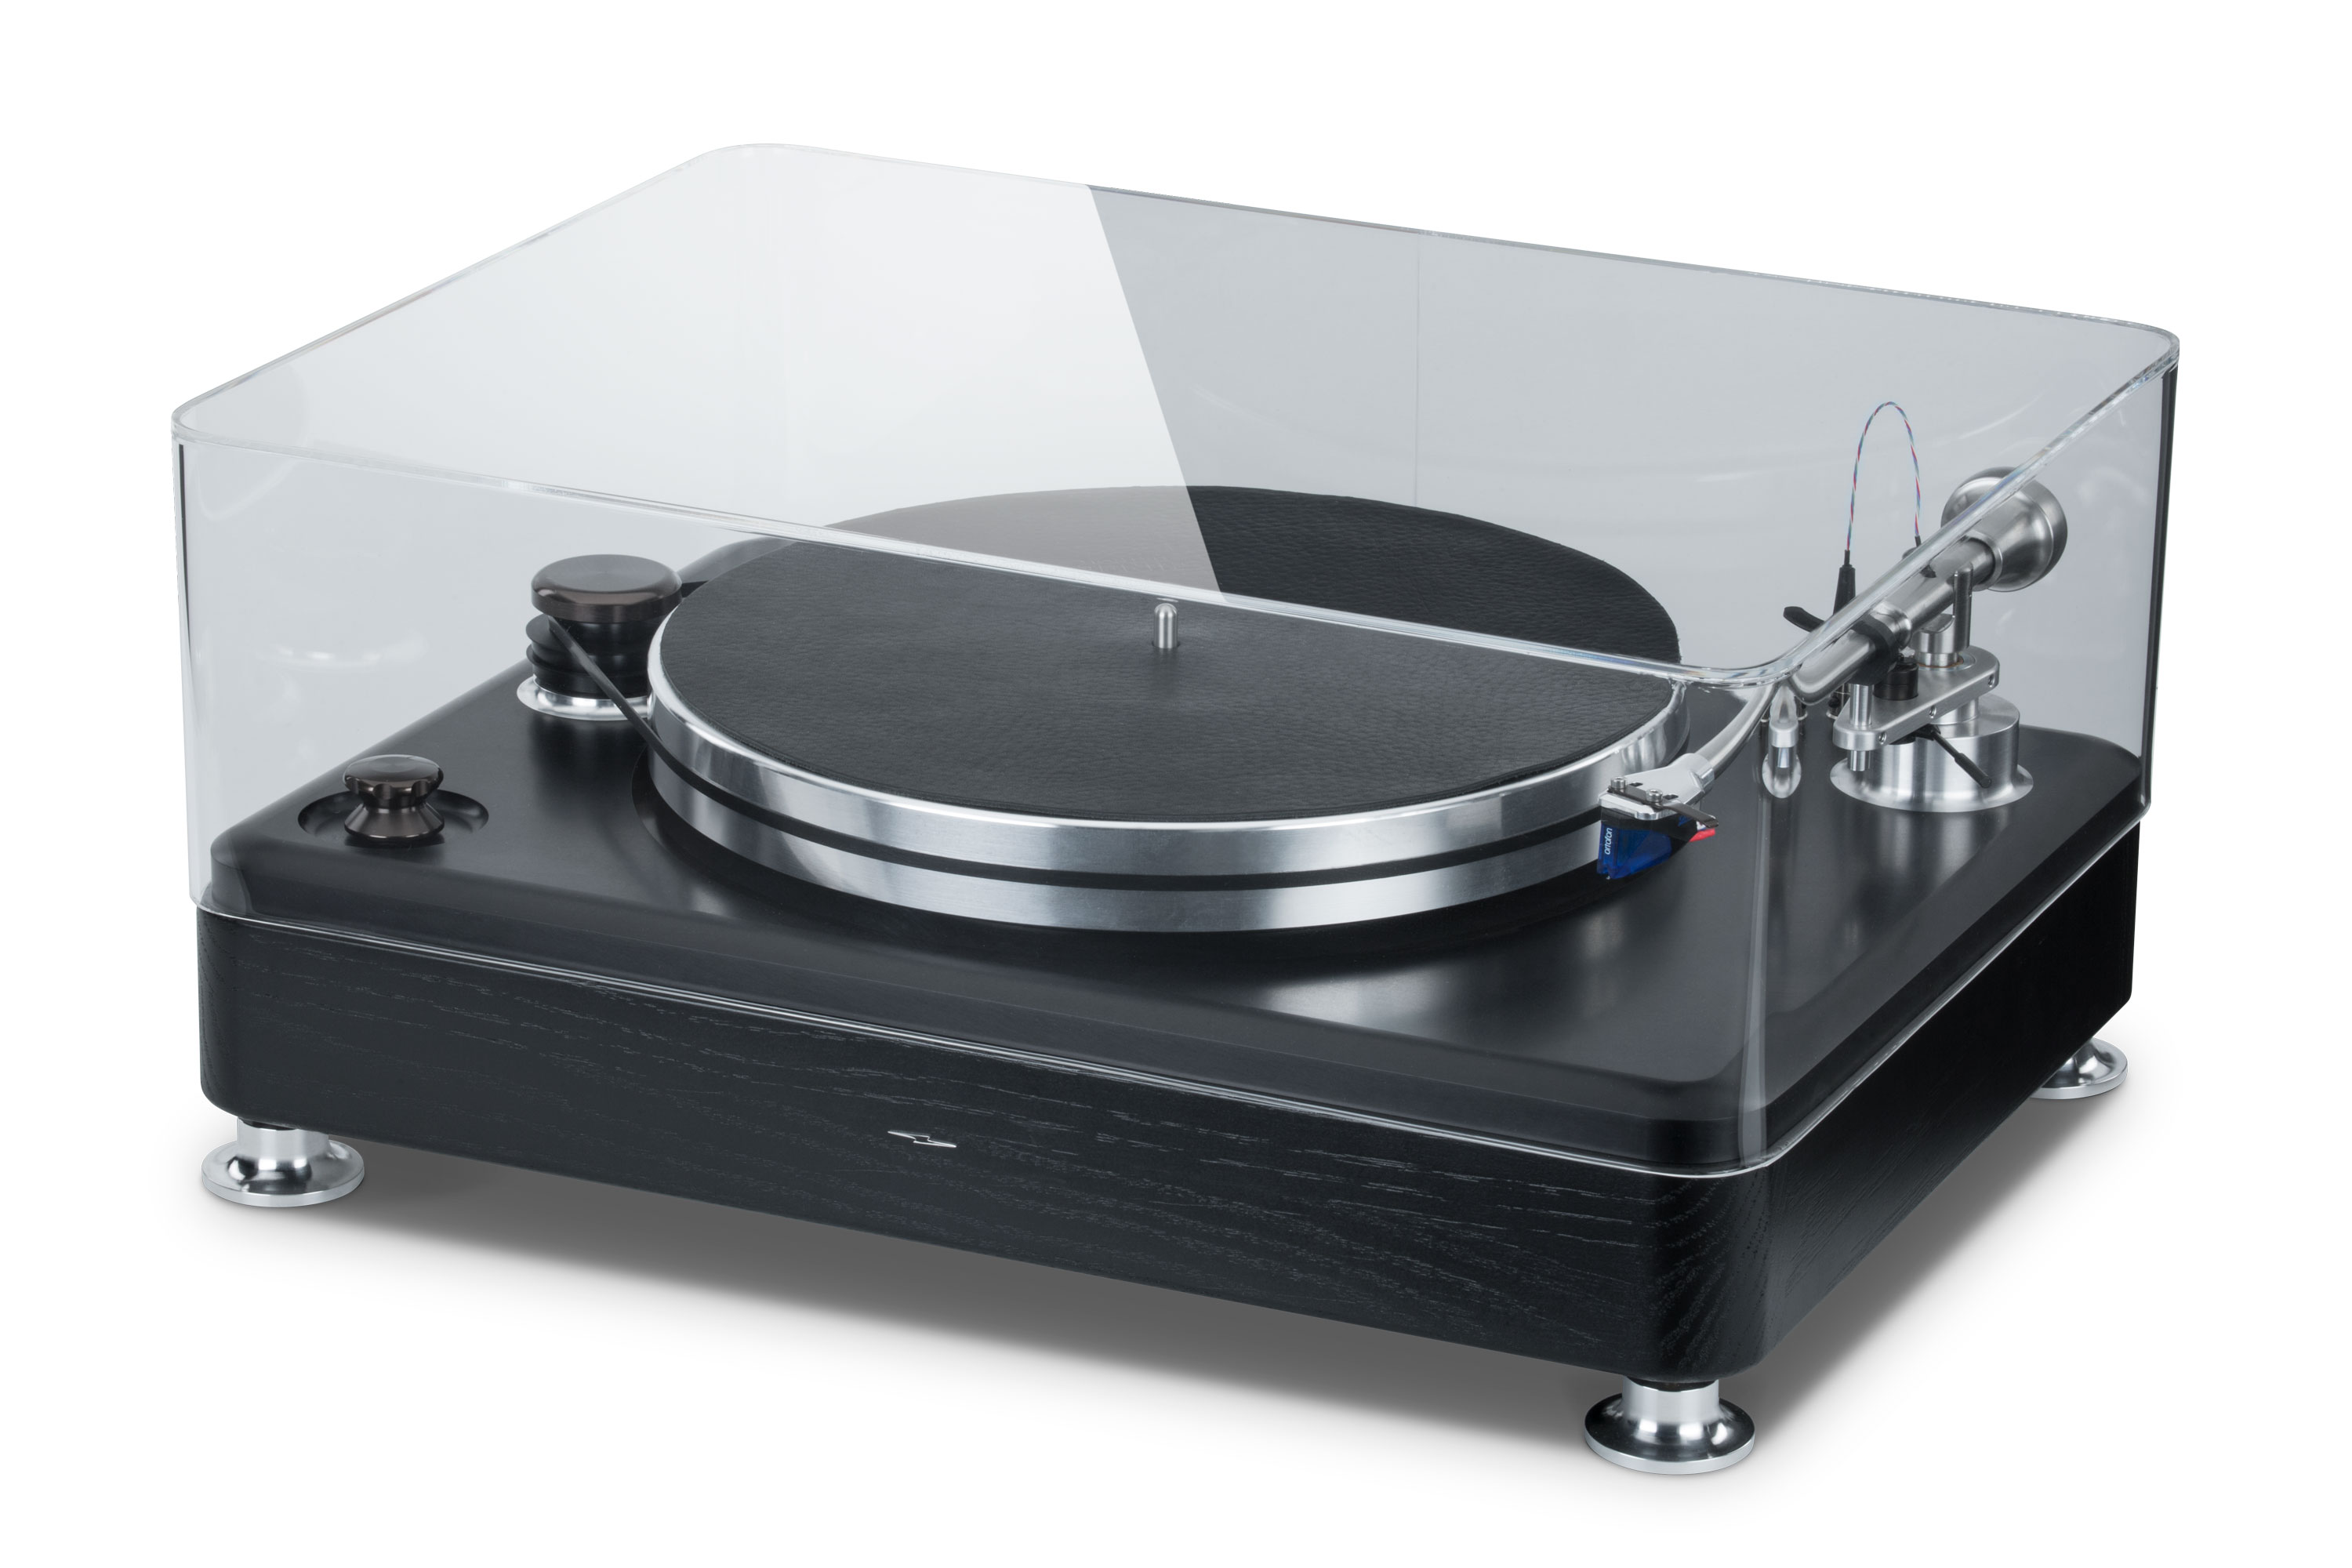 ClaraVu dust cover for Shinola turntable with clear top